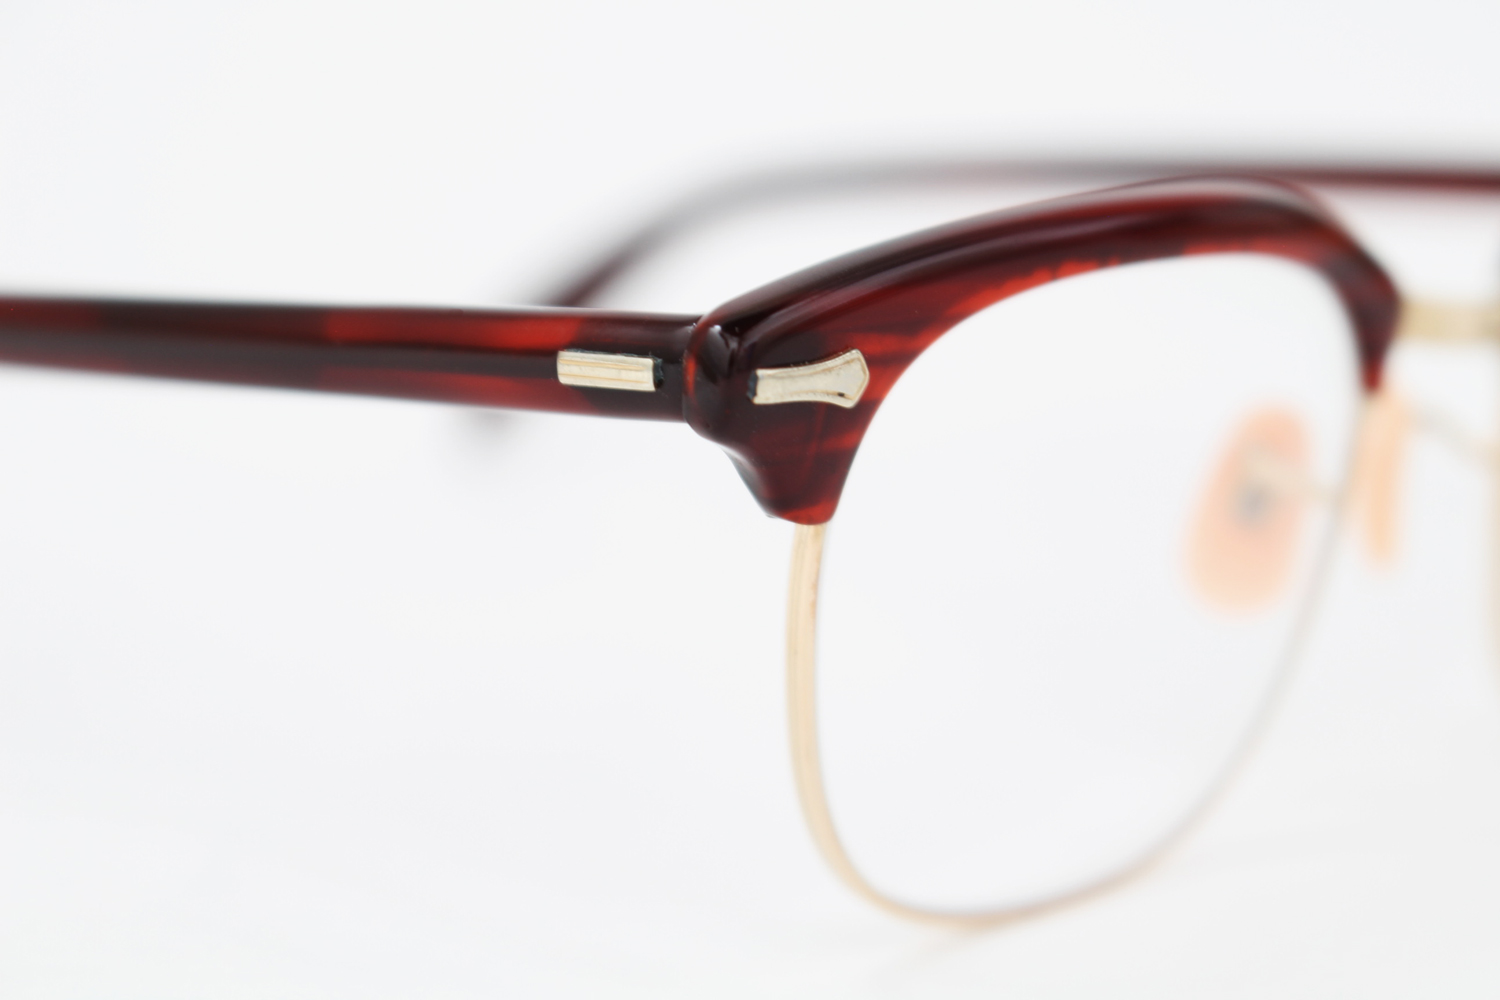 TS_Shuron_Optical_Company_Combination_1_10-12K_Gold_Filled_with_Cellulose_Acetate_red_3